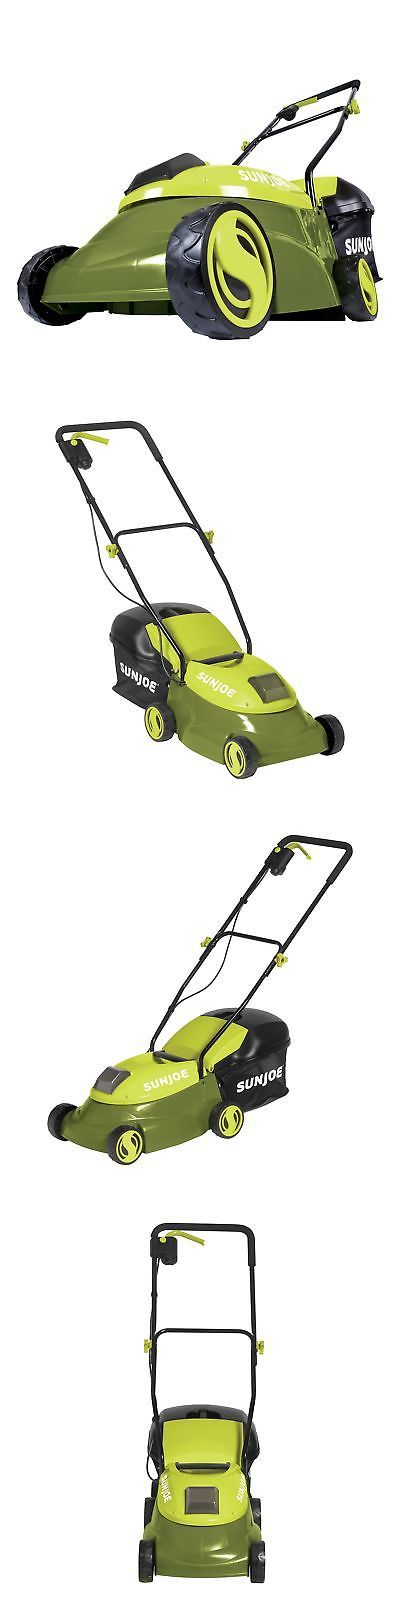 Walk-Behind Mowers 71272: Sun Joe Mj401c 14-Inch 28-Volt Cordless Push Lawn Mower Black -> BUY IT NOW ONLY: $167.75 on eBay!